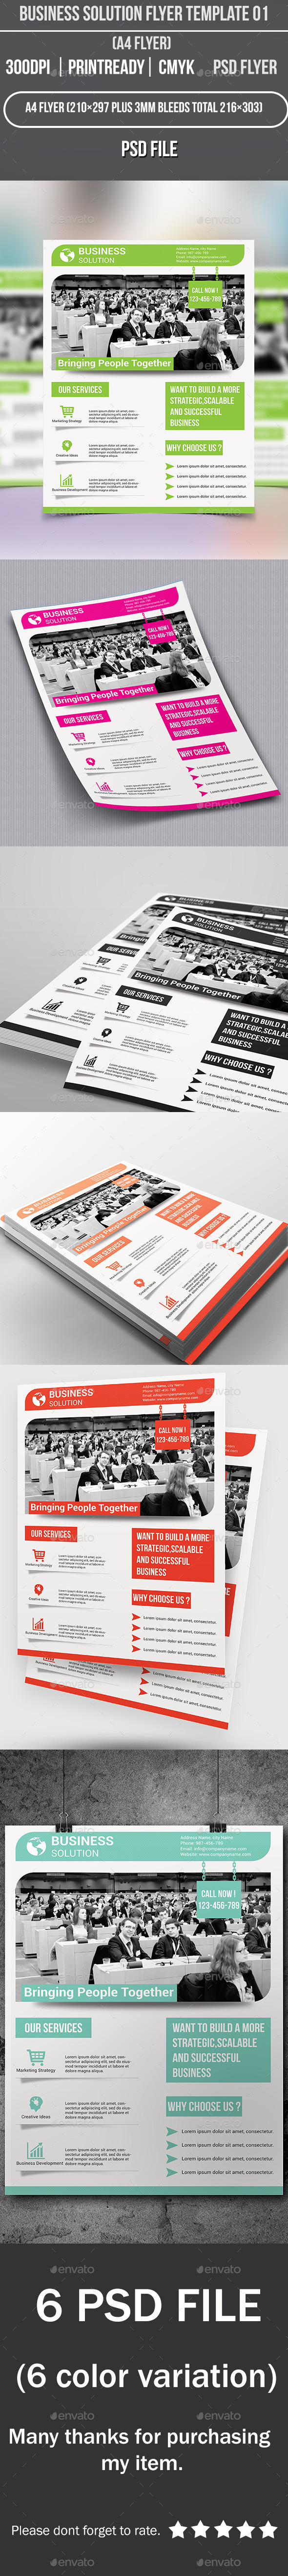 Business Solution Flyer Template 01 - Corporate Flyers